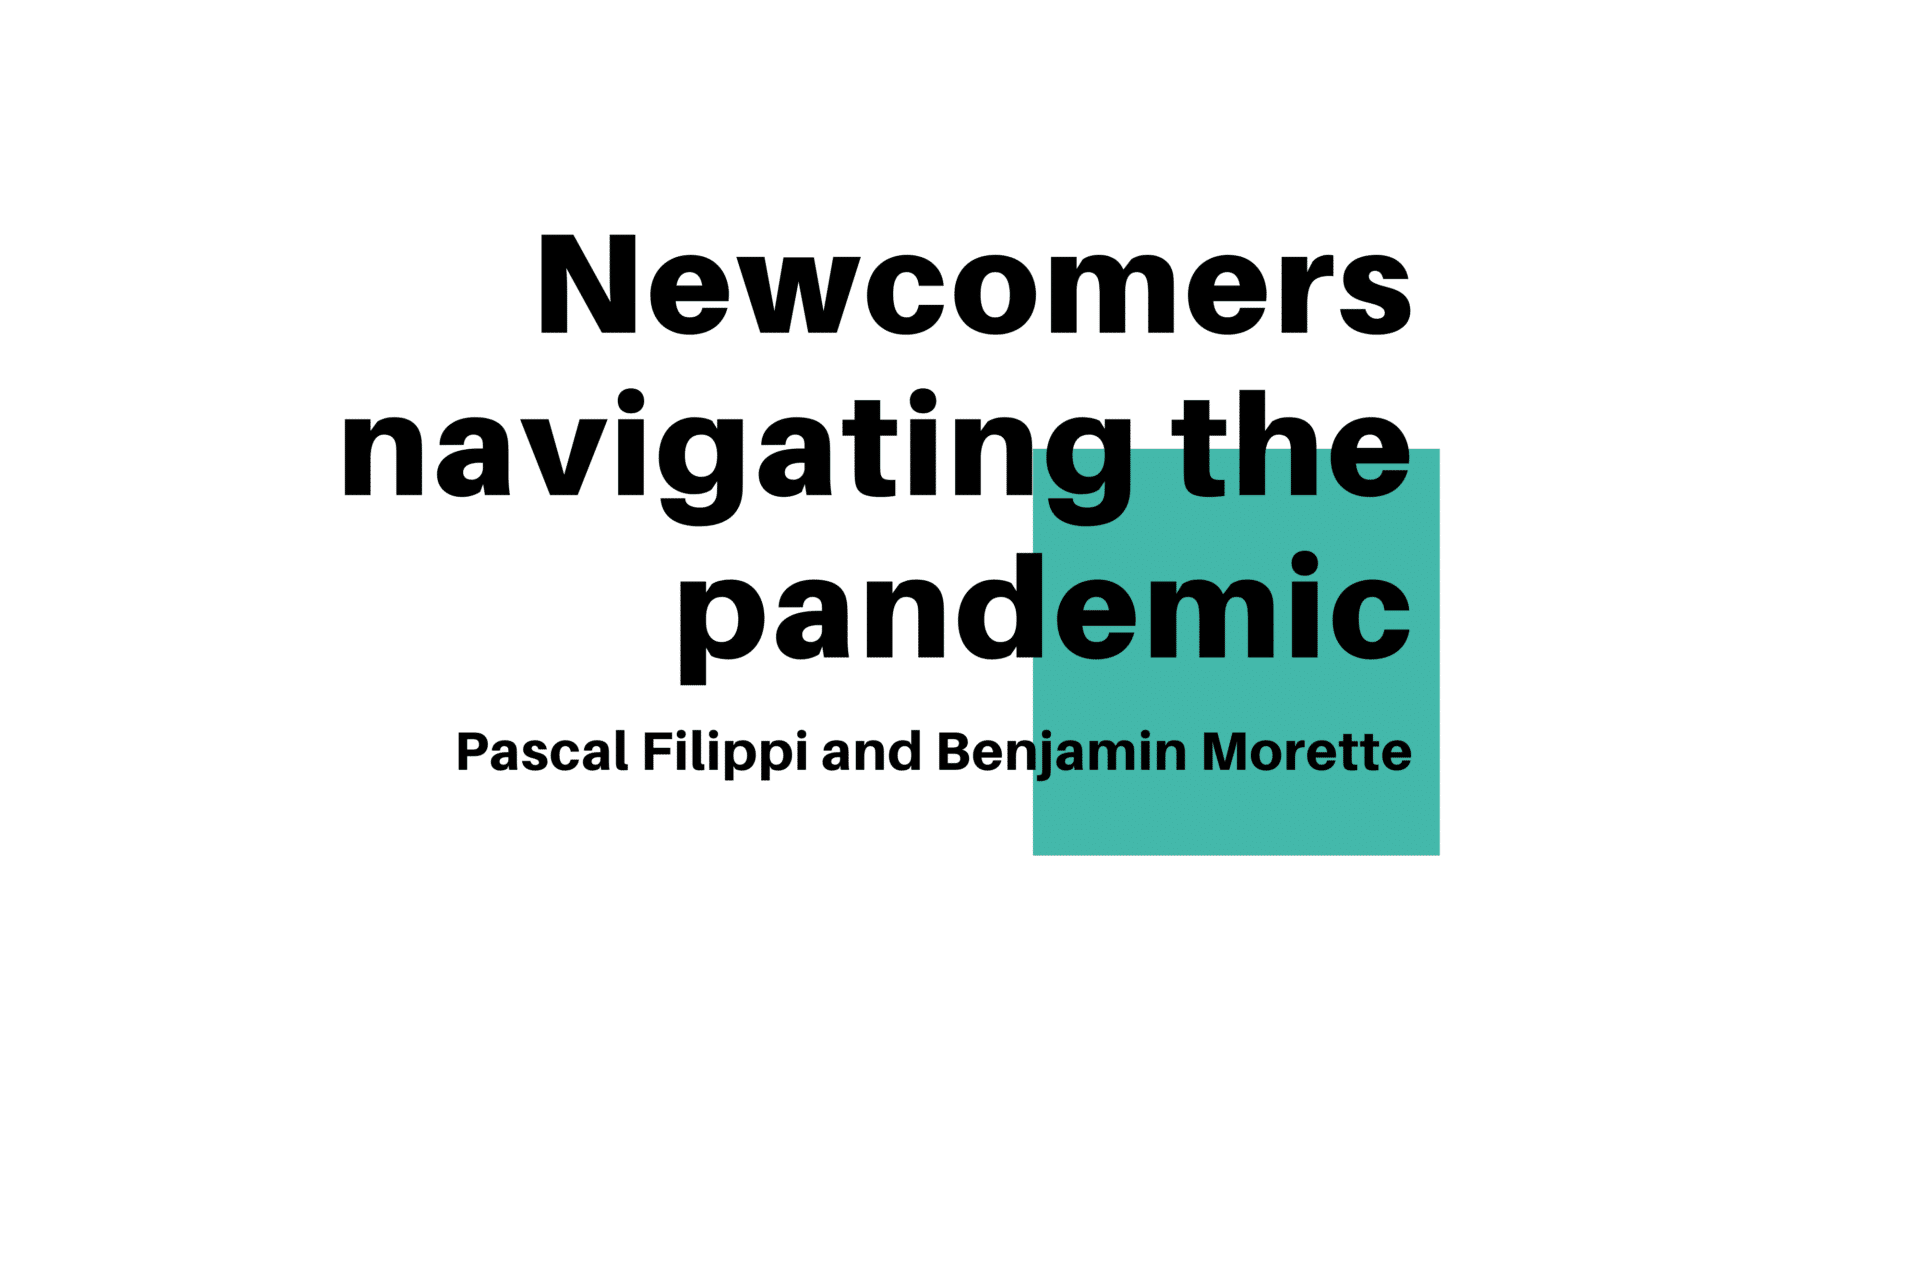 Local Journalism Initiative - Newcomers navigating the pandemic title card